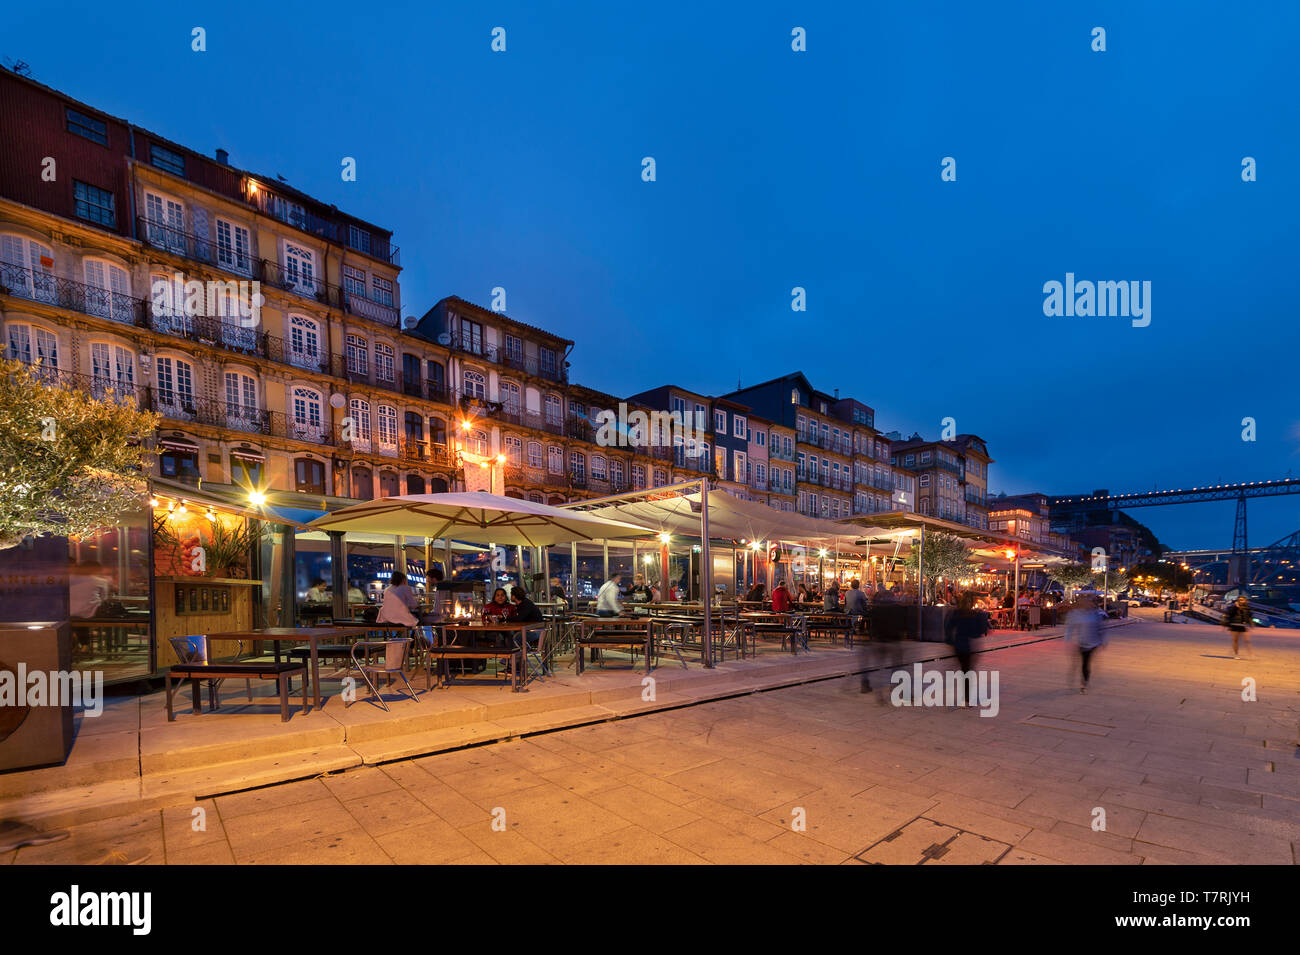 The Ribeira waterfront district of Porto, Portugal at night with illuminated restaurants and cafes. - Stock Image